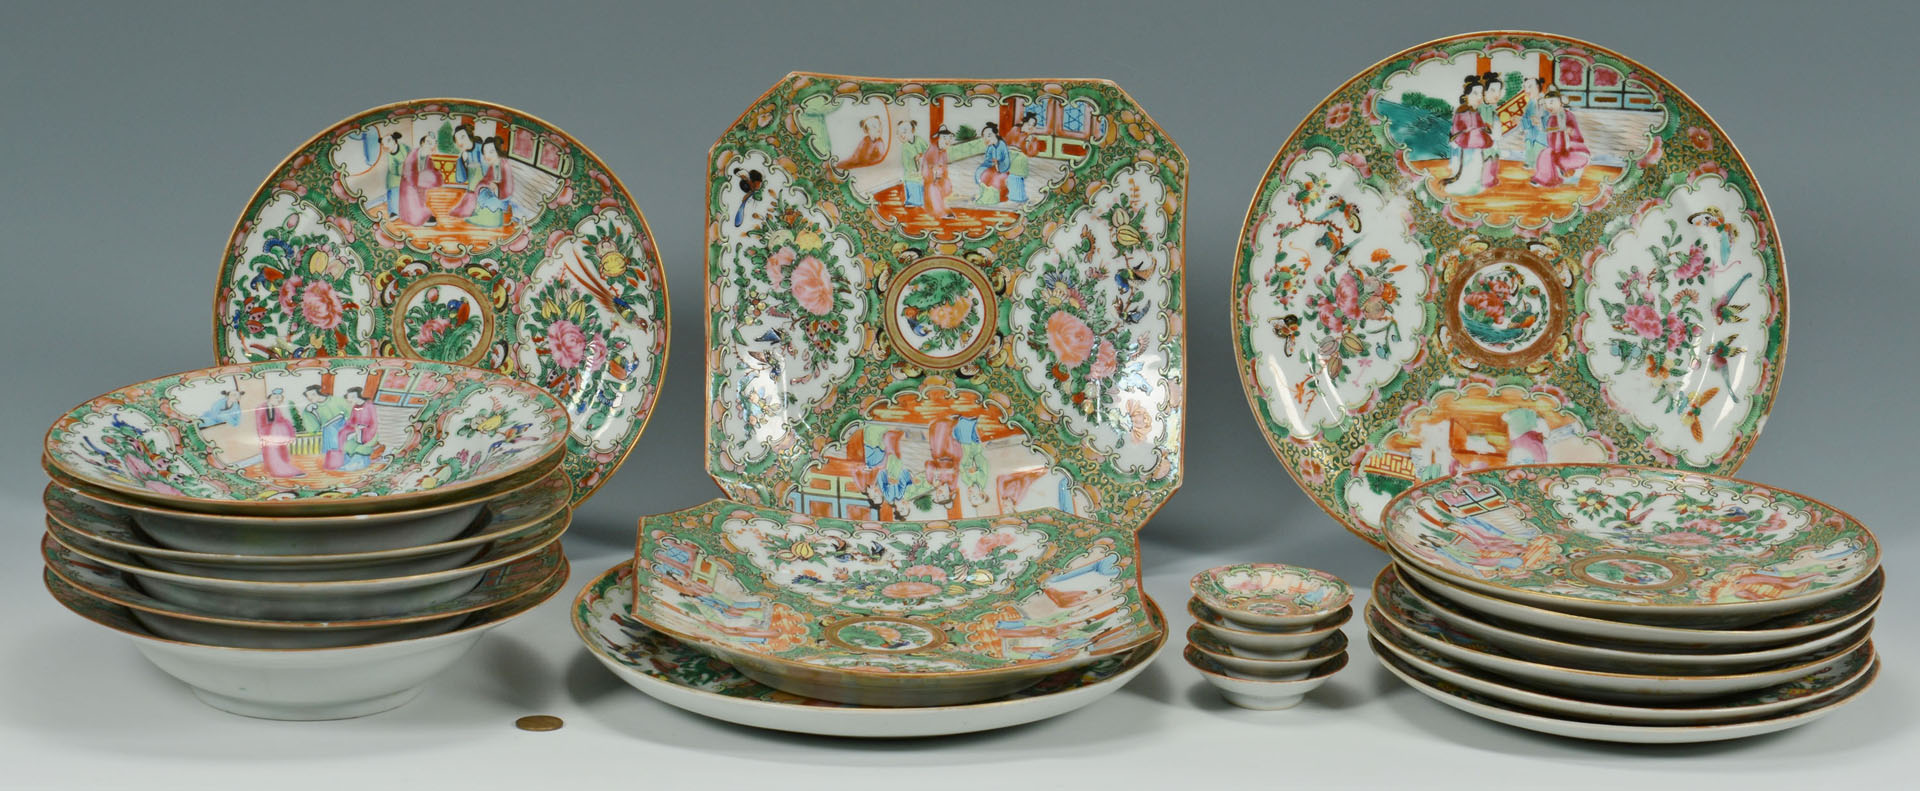 Lot 481: Group of Chinese Rose Medallion Porcelain